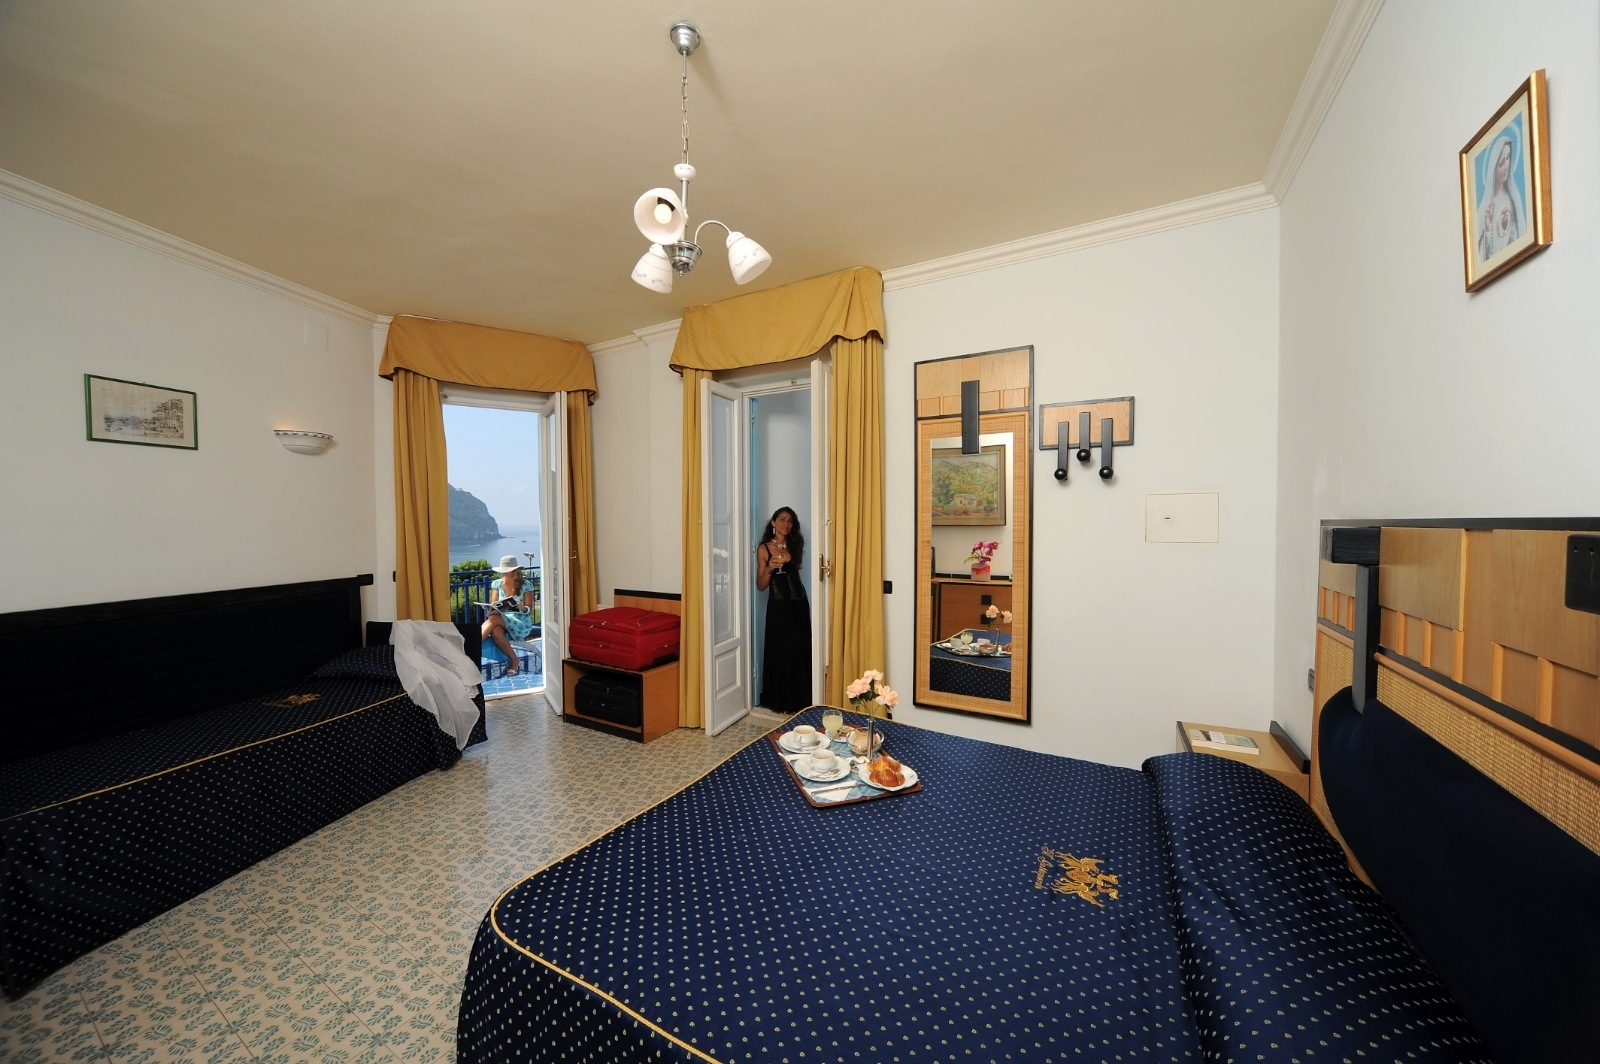 Camera Con Letto A Castello Residence Erika Pictures to pin on ...